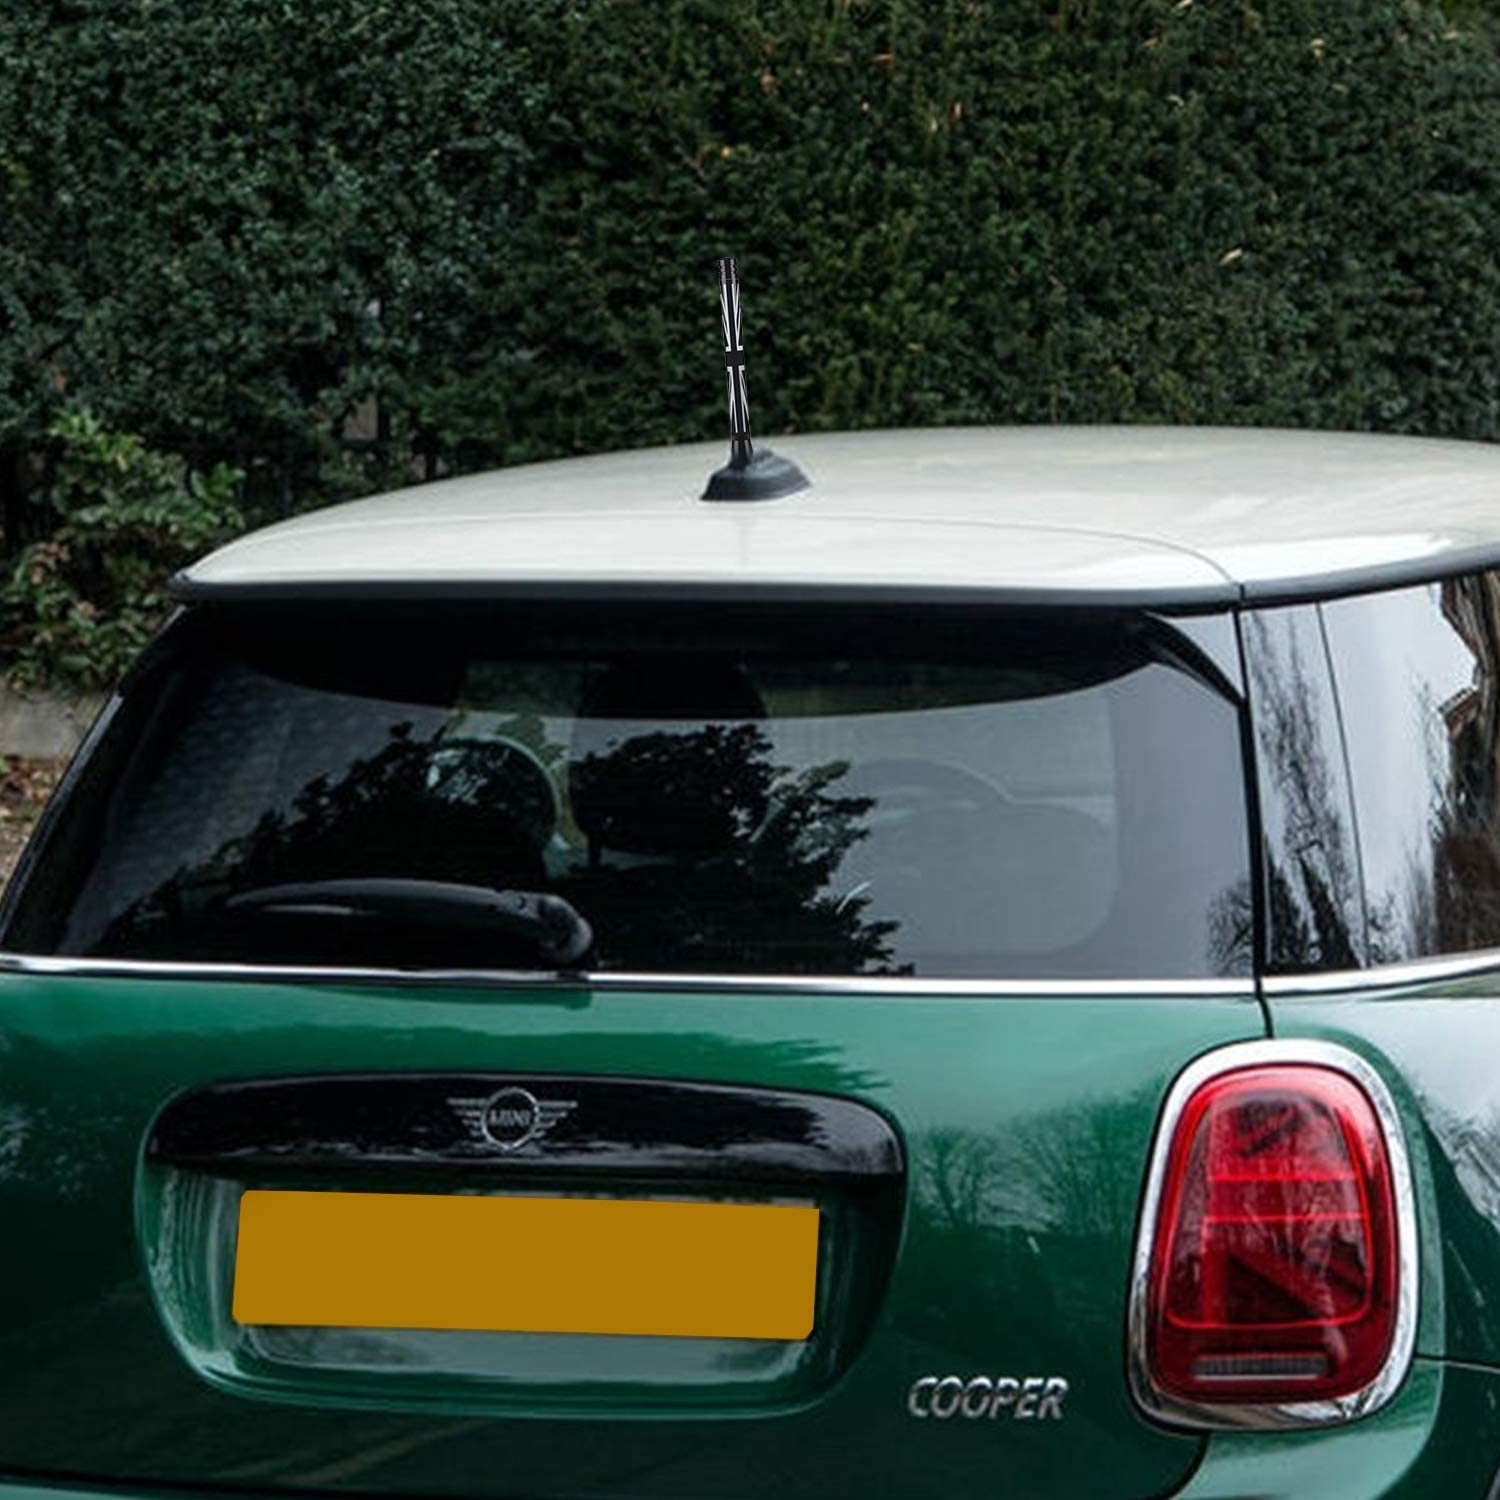 Convertible Cooper S Countryman Clubman Red//Blue//White Union Jack UK Flag Coupe or Roadster Will fit Any Mini Cooper The Stubby Antenna for Mini Cooper All Models